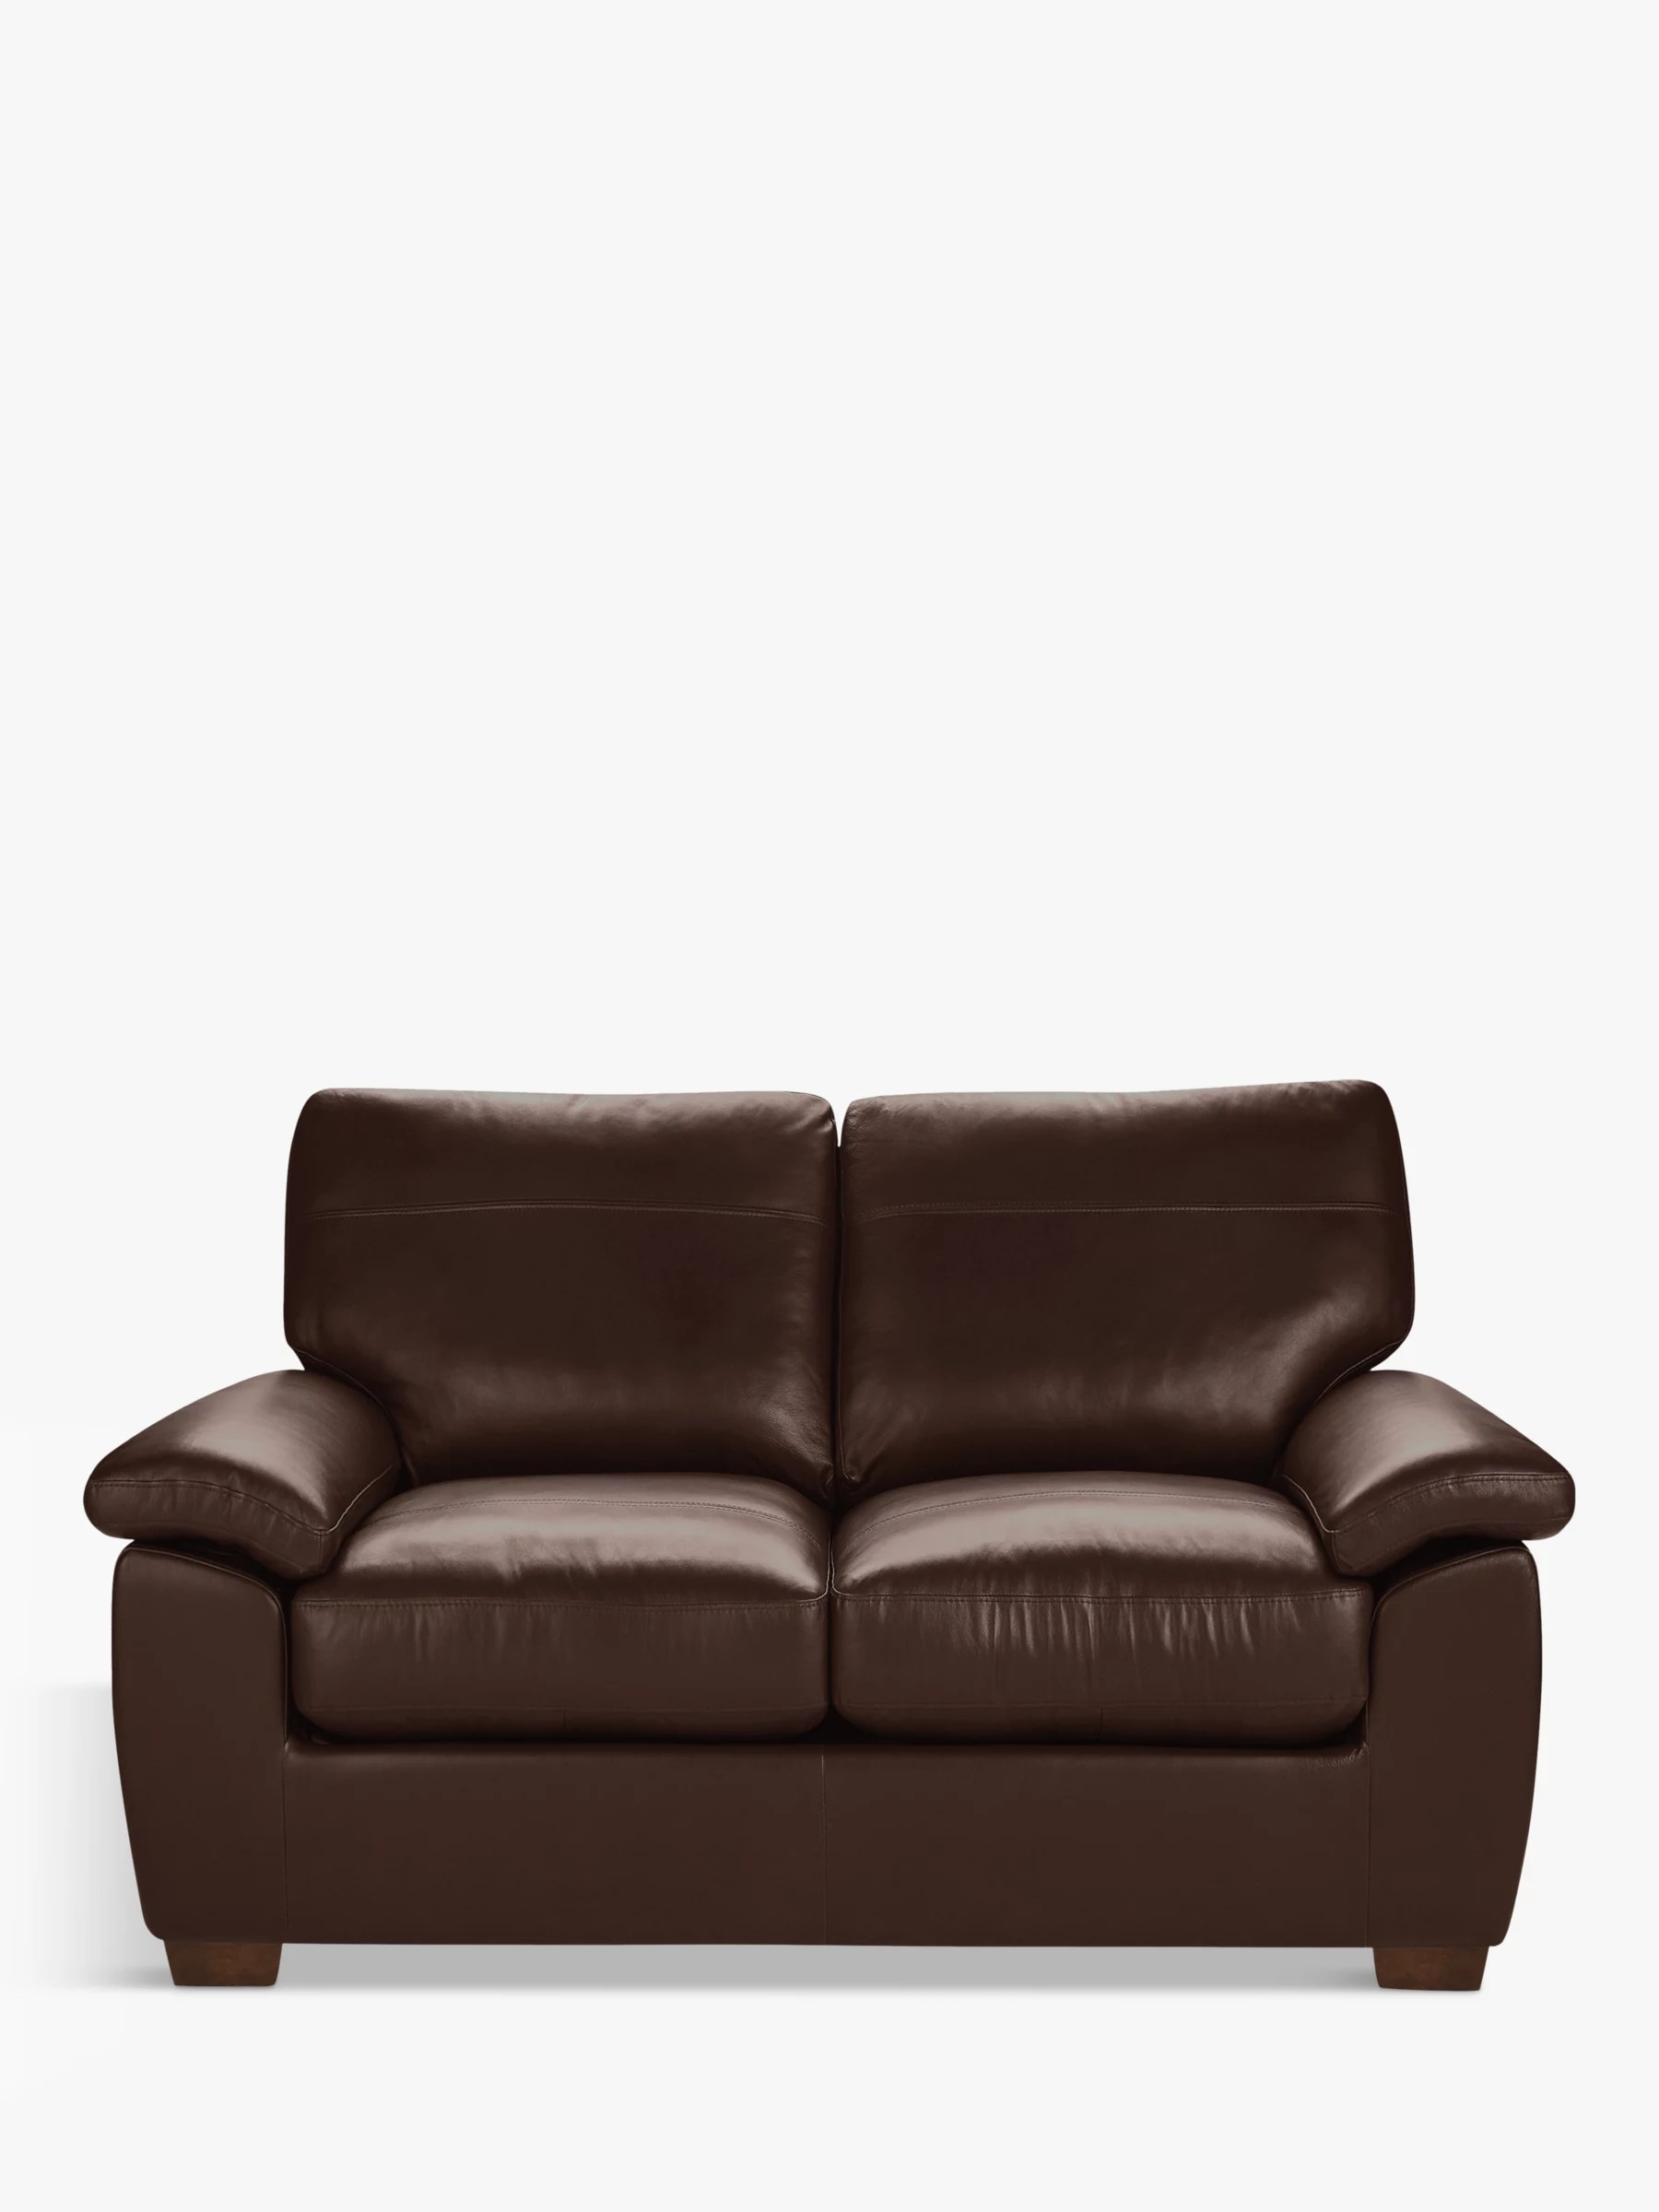 John Lewis Partners Camden Small 2 Seater Leather Sofa Dark Leg Nature Brown At John Lewis Partners